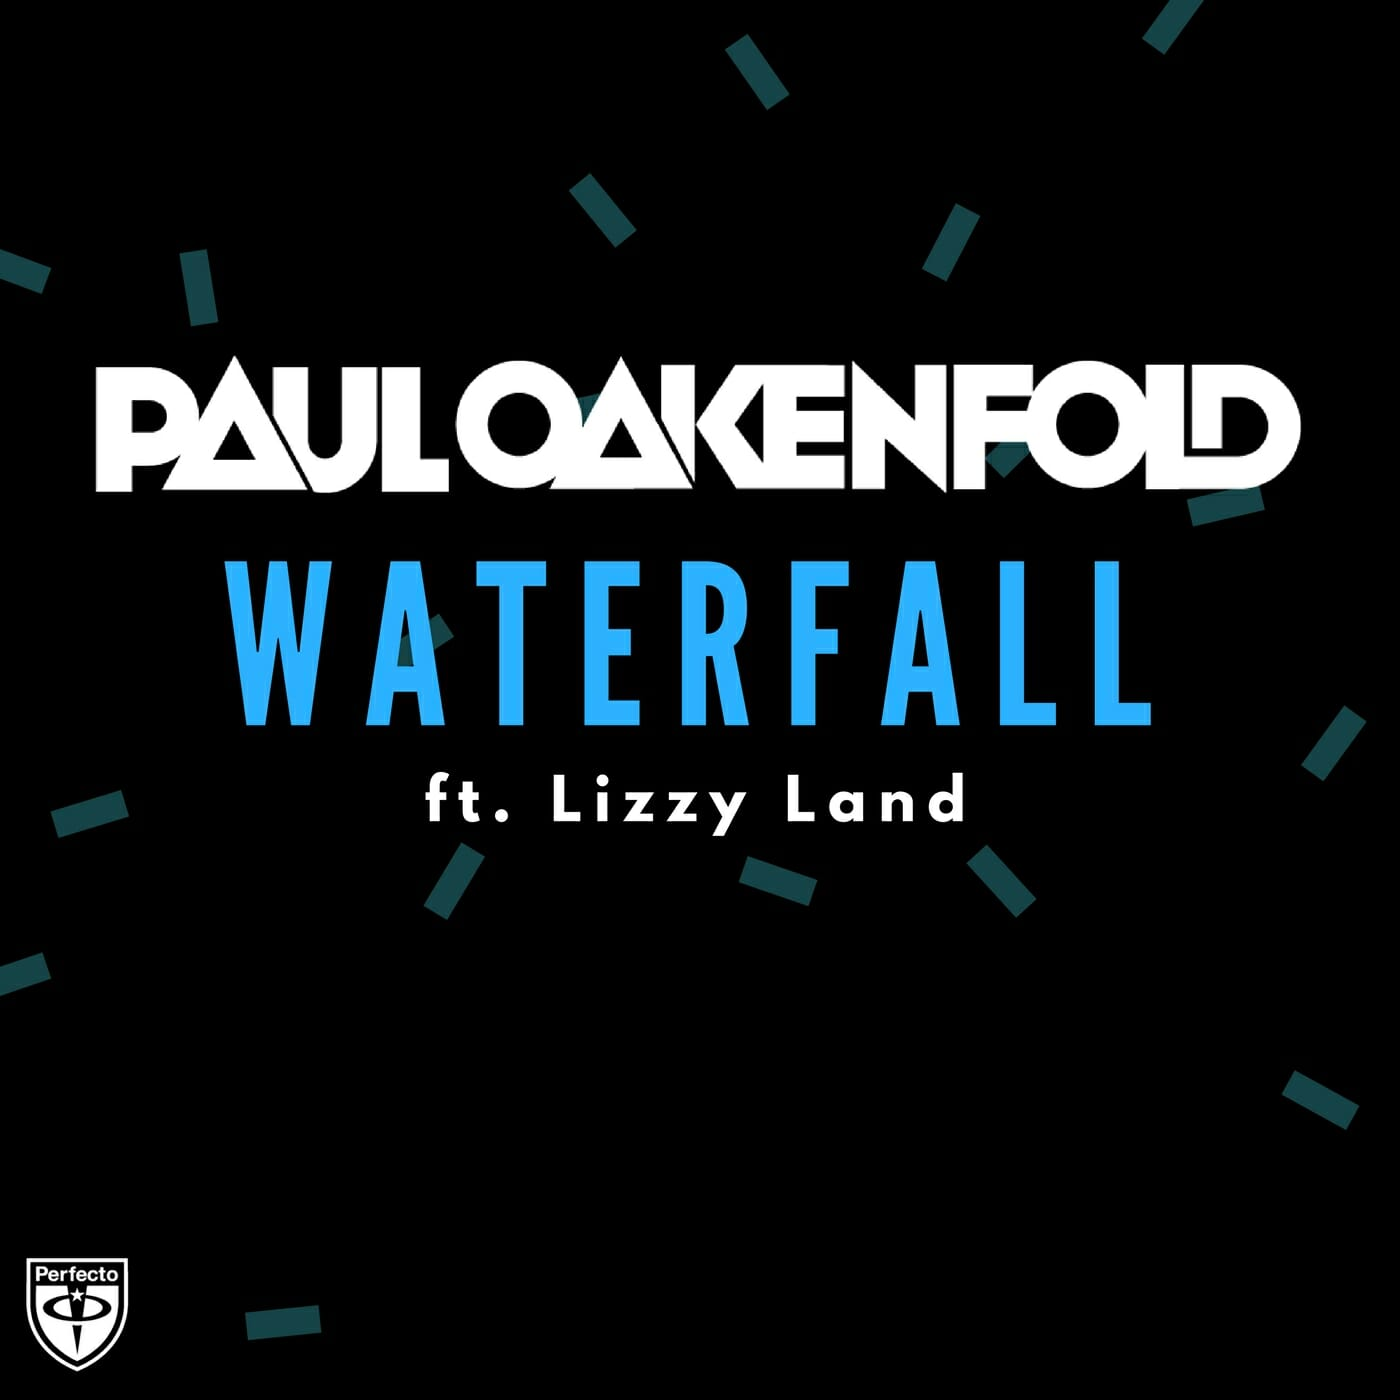 Paul Oakenfold – Waterfall ft Lizzy LandWaterfallV1 1